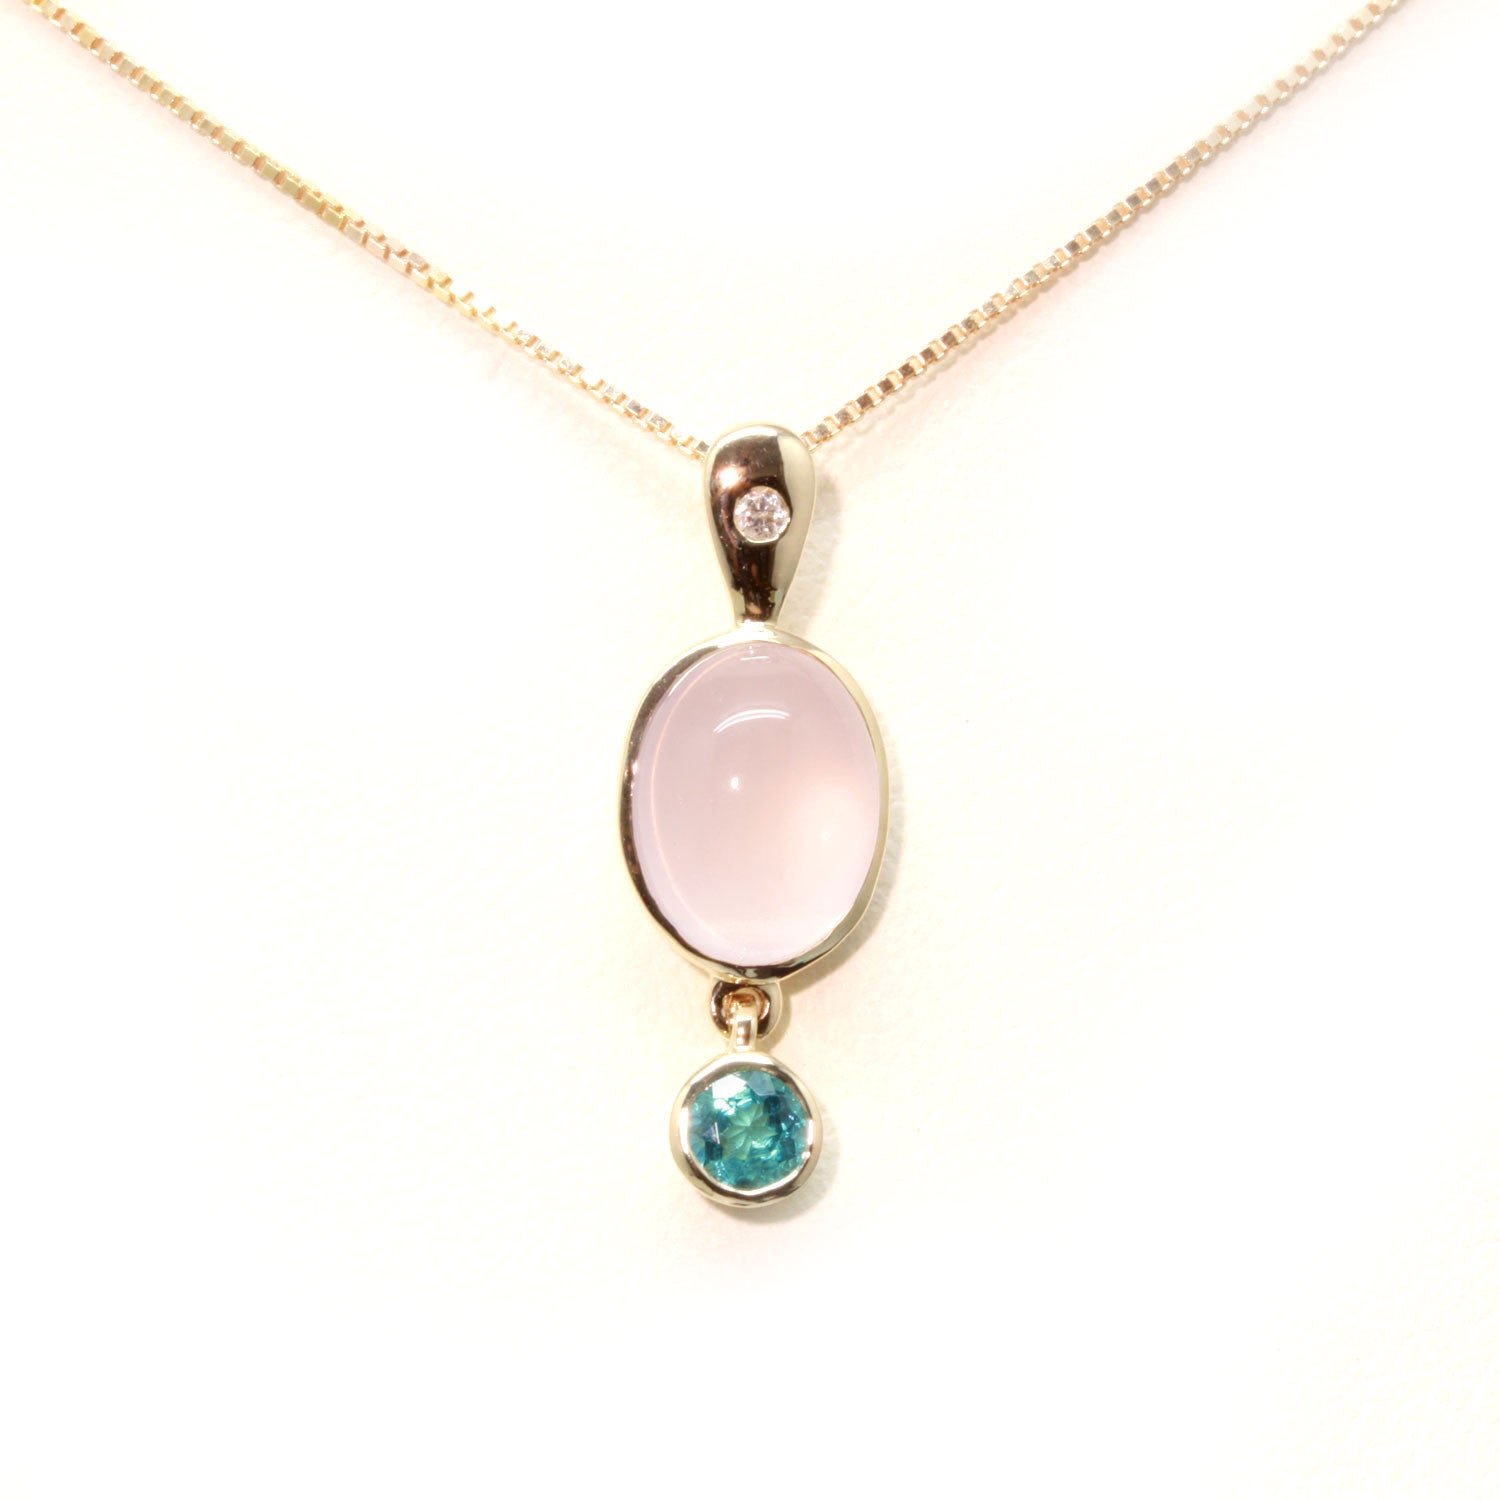 Rose Quartz, Blue Tourmaline and Diamond Pendant in 10K Gold